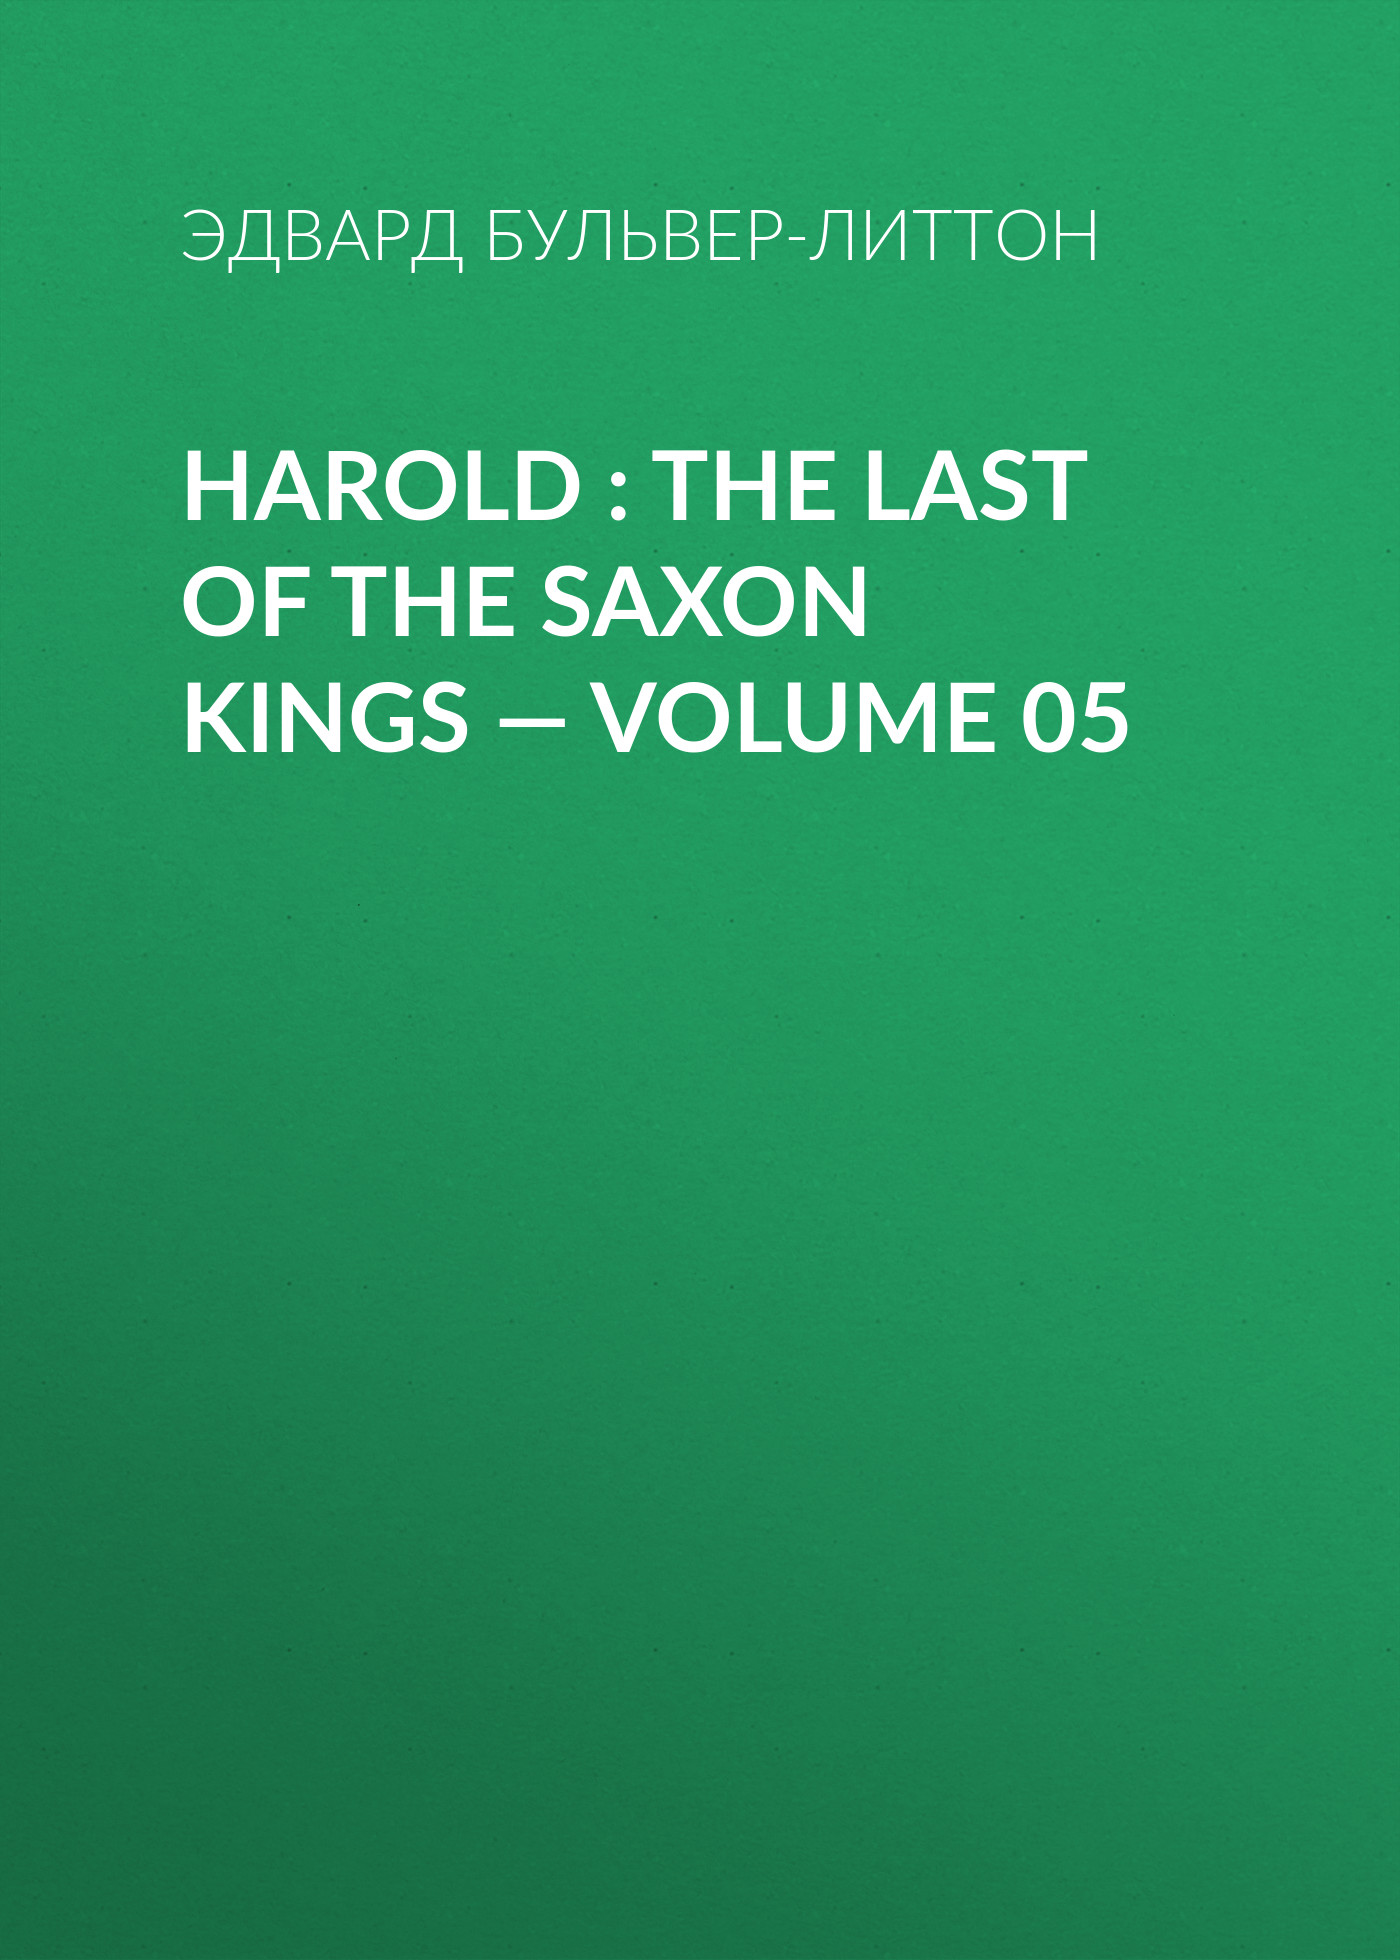 Эдвард Бульвер-Литтон Harold : the Last of the Saxon Kings — Volume 05 эдвард бульвер литтон harold the last of the saxon kings volume 06